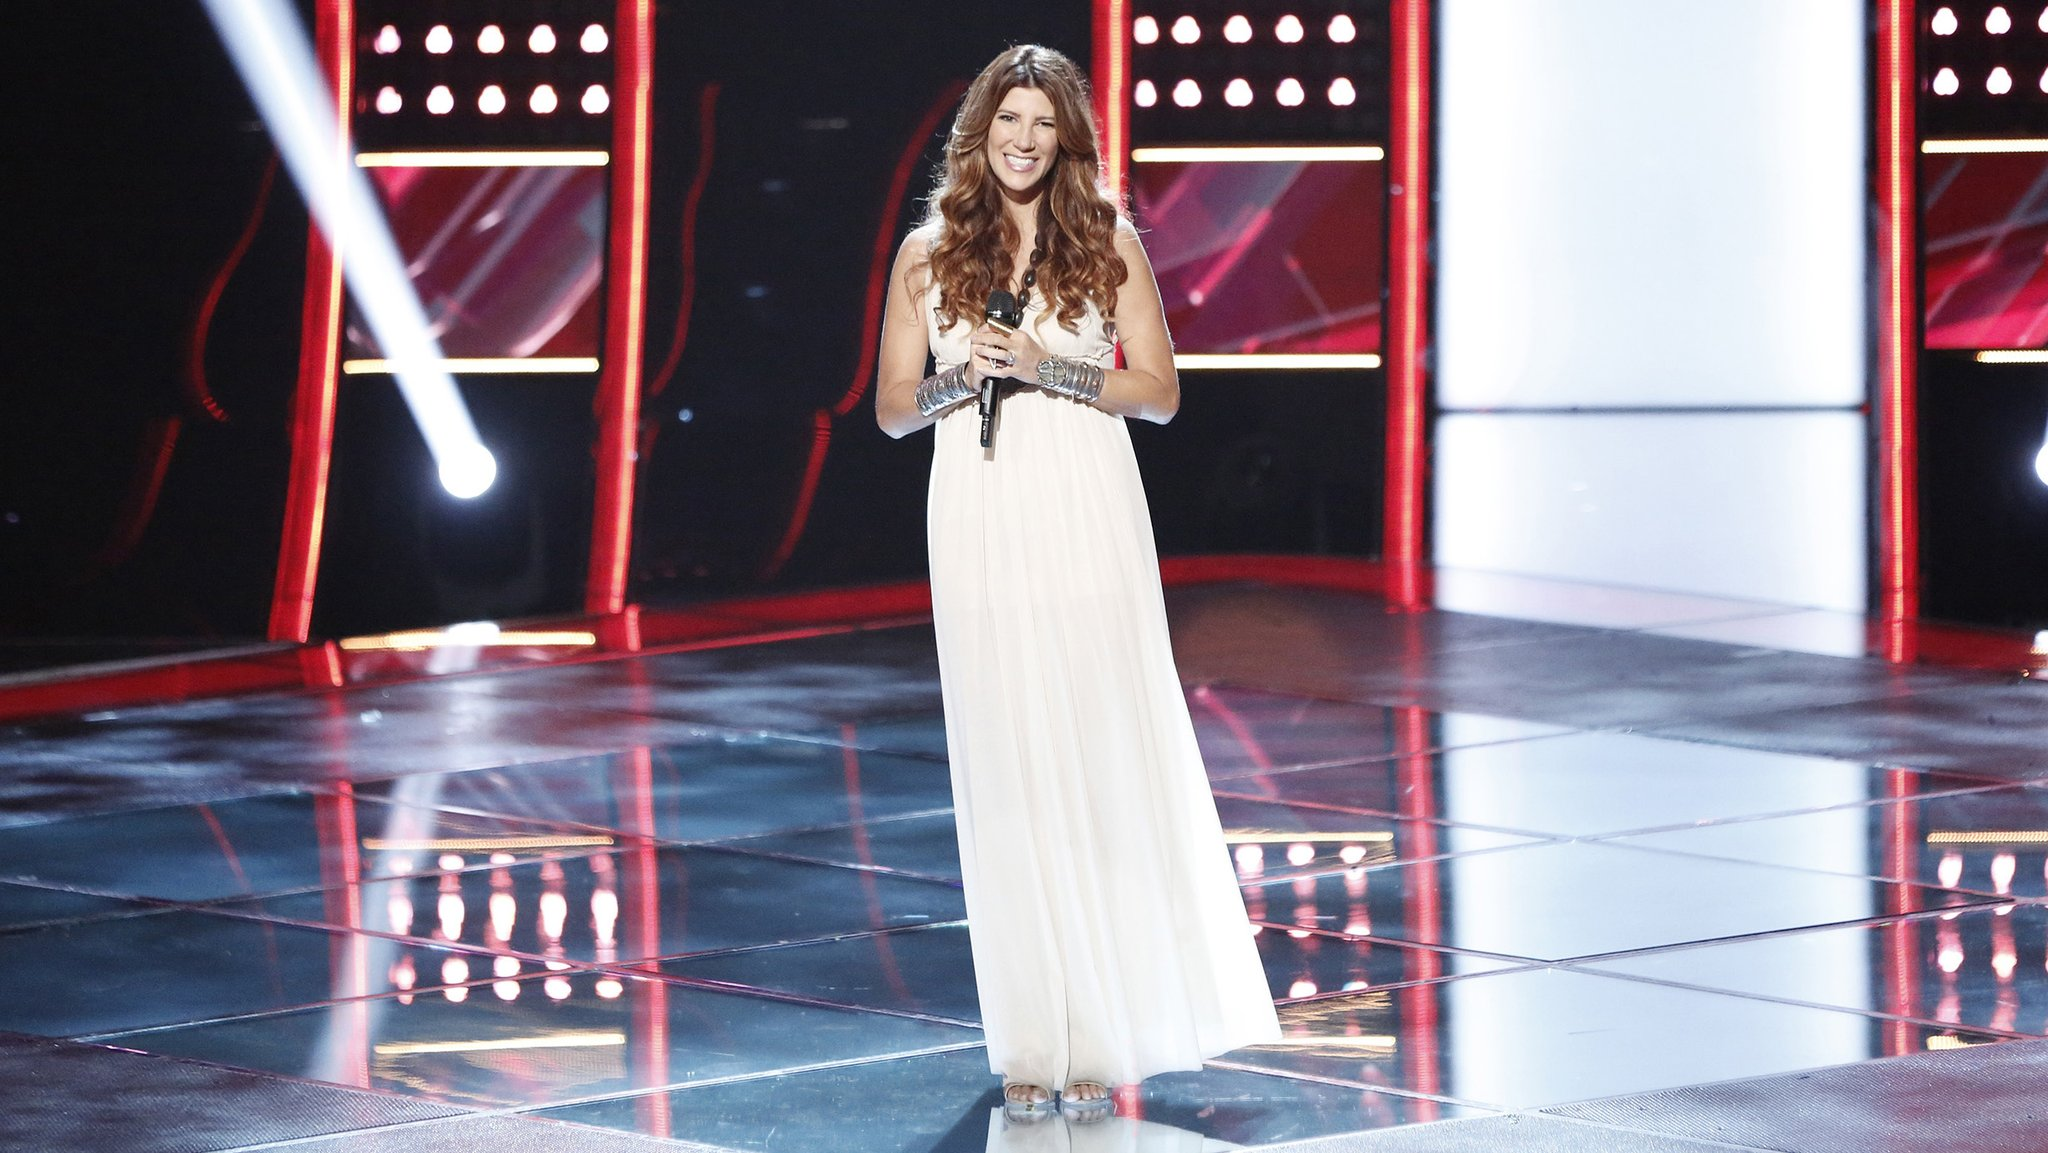 Thank you @ShanaHalligan!!! ������ I'm so blessed to have your unique talent on my team! #TeamAlicia #TheVoice https://t.co/5QYqf8o5pH